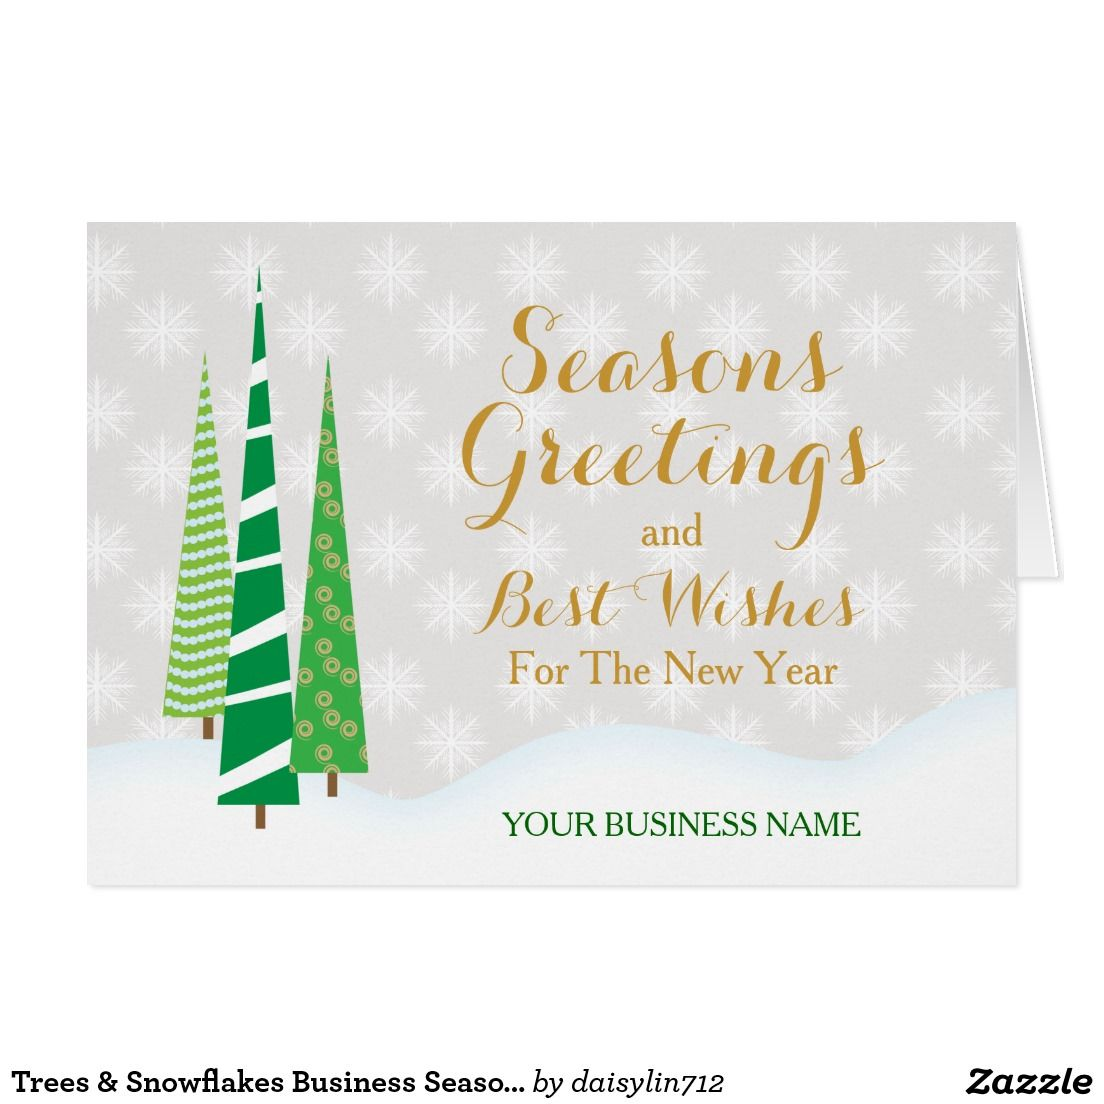 Trees snowflakes business seasons greetings custom christmas business holiday greeting card featuring three tall skinny christmas trees and customizable text on the front and inside kristyandbryce Images